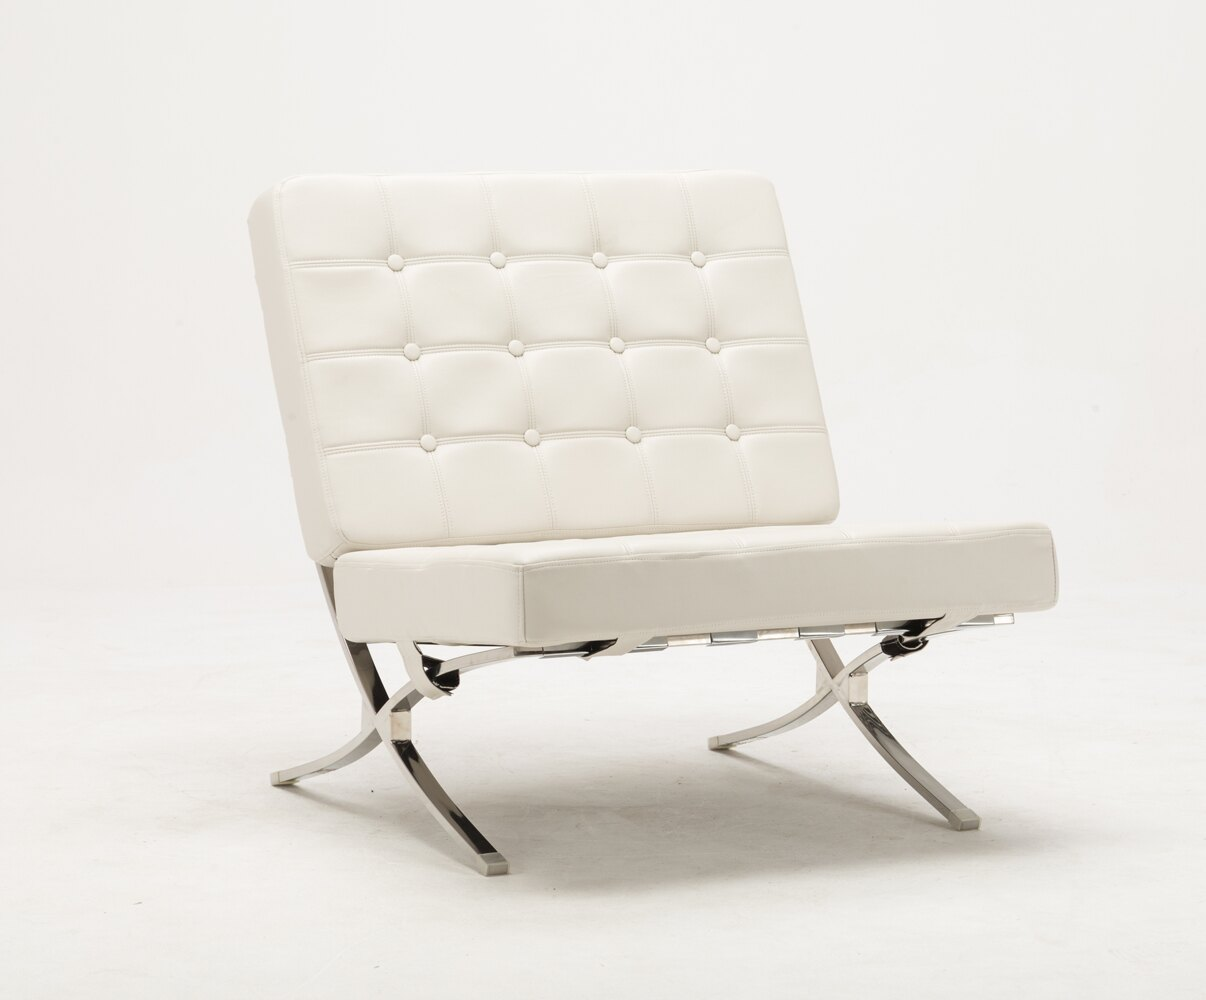 steel lounge chair spandex banquet covers for sale mcombo balcony modern faux leather leisure beach white stainless frame 7106